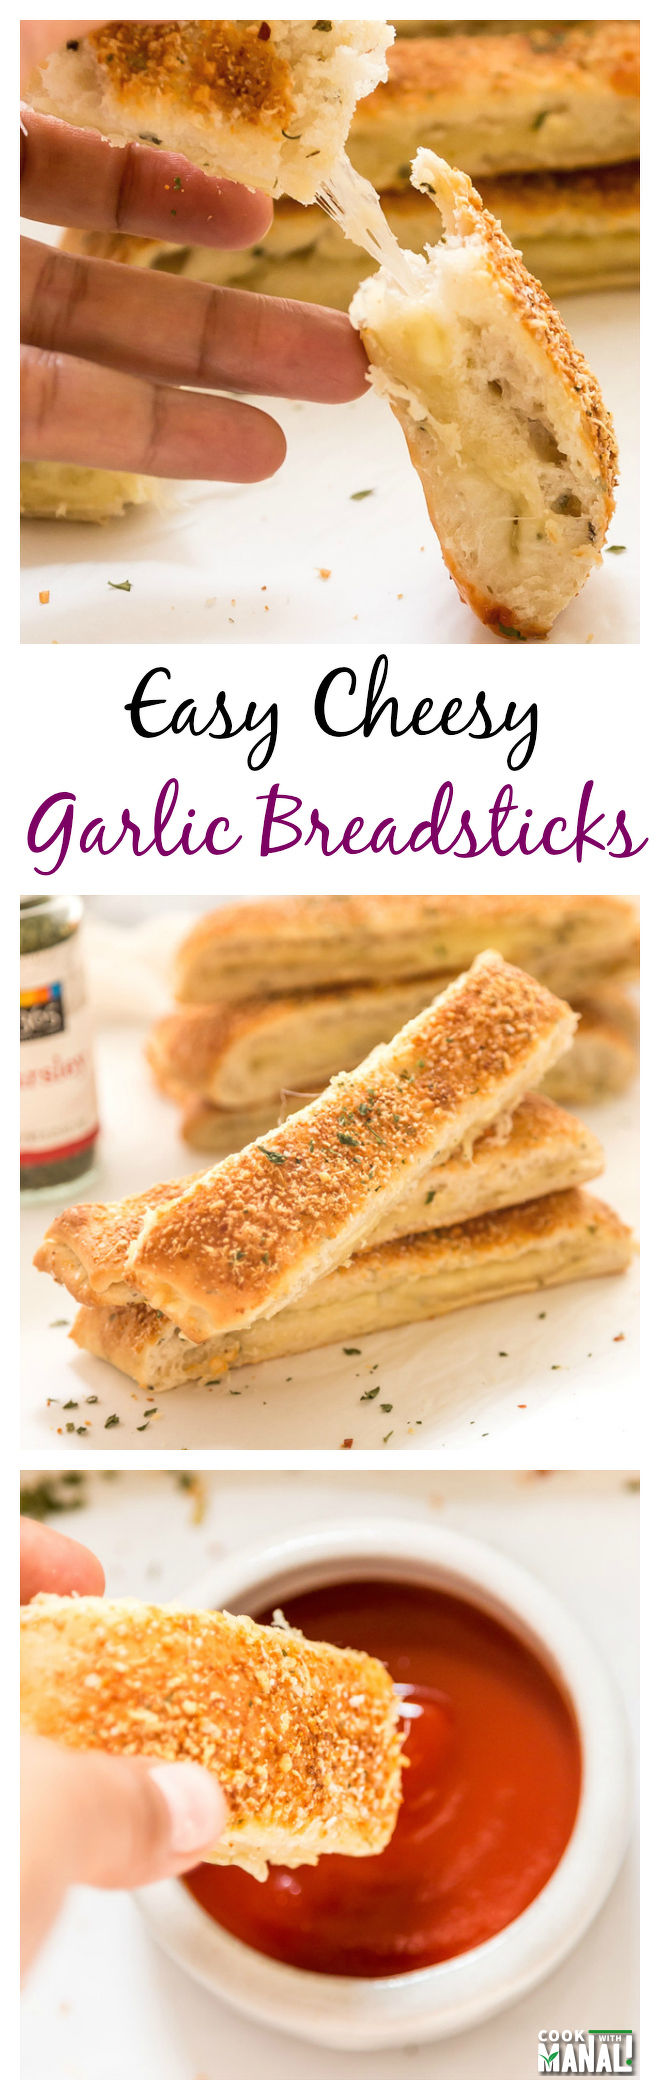 Easy Cheesy Garlic Bread Sticks Collage